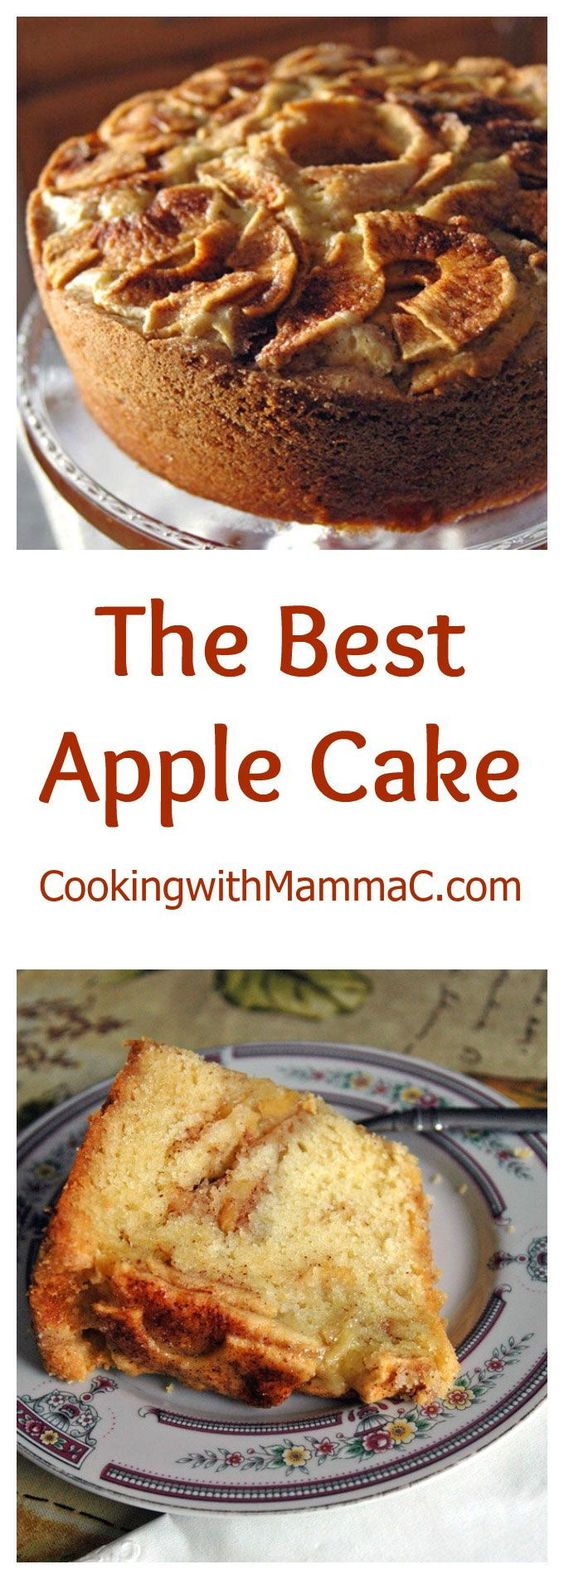 The Best Apple Cake